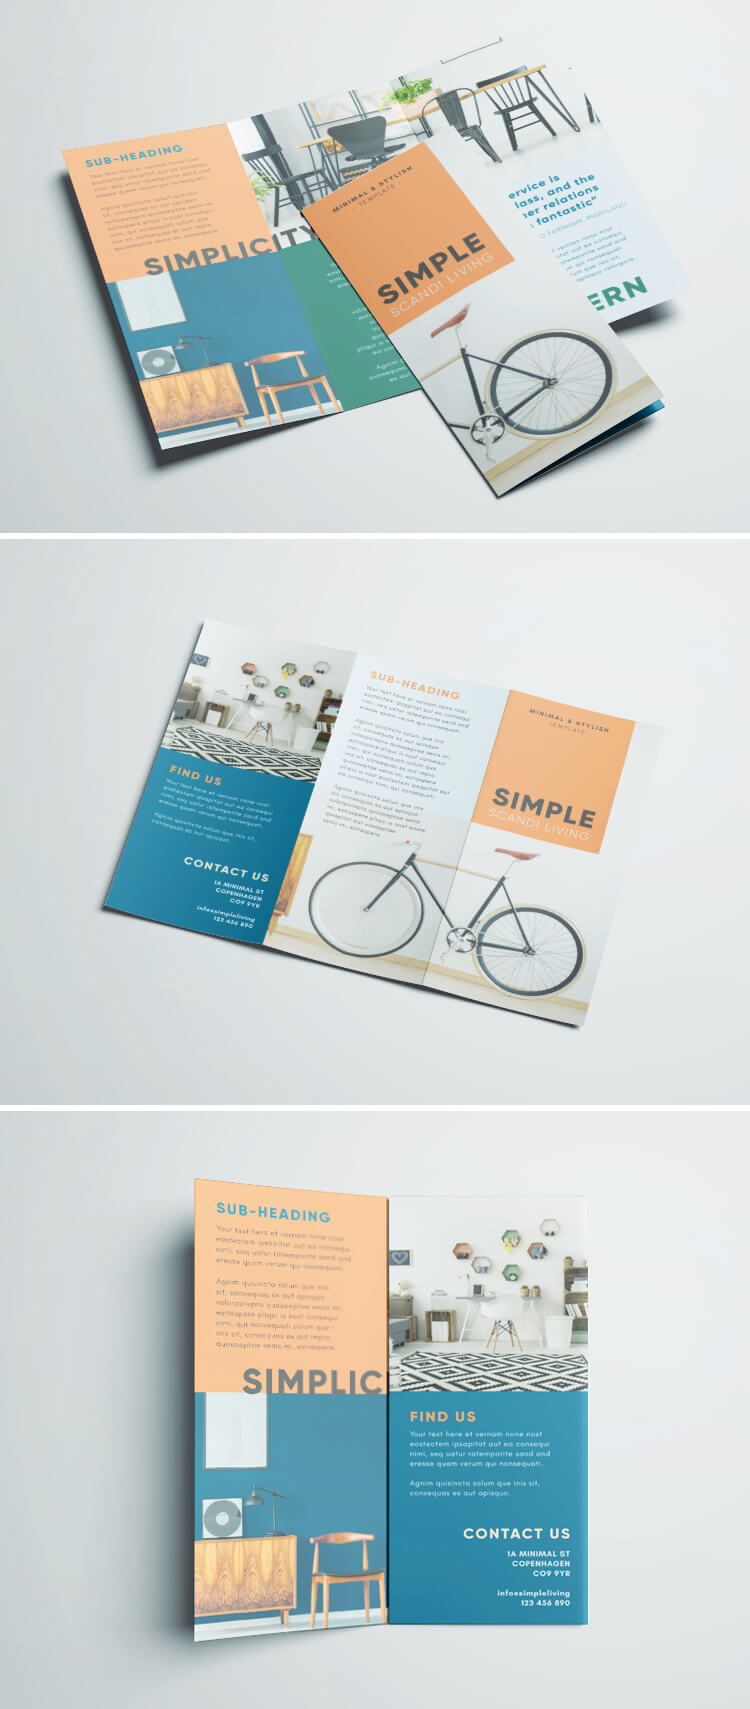 Simple tri fold brochure free indesign template for Two fold brochure templates free download